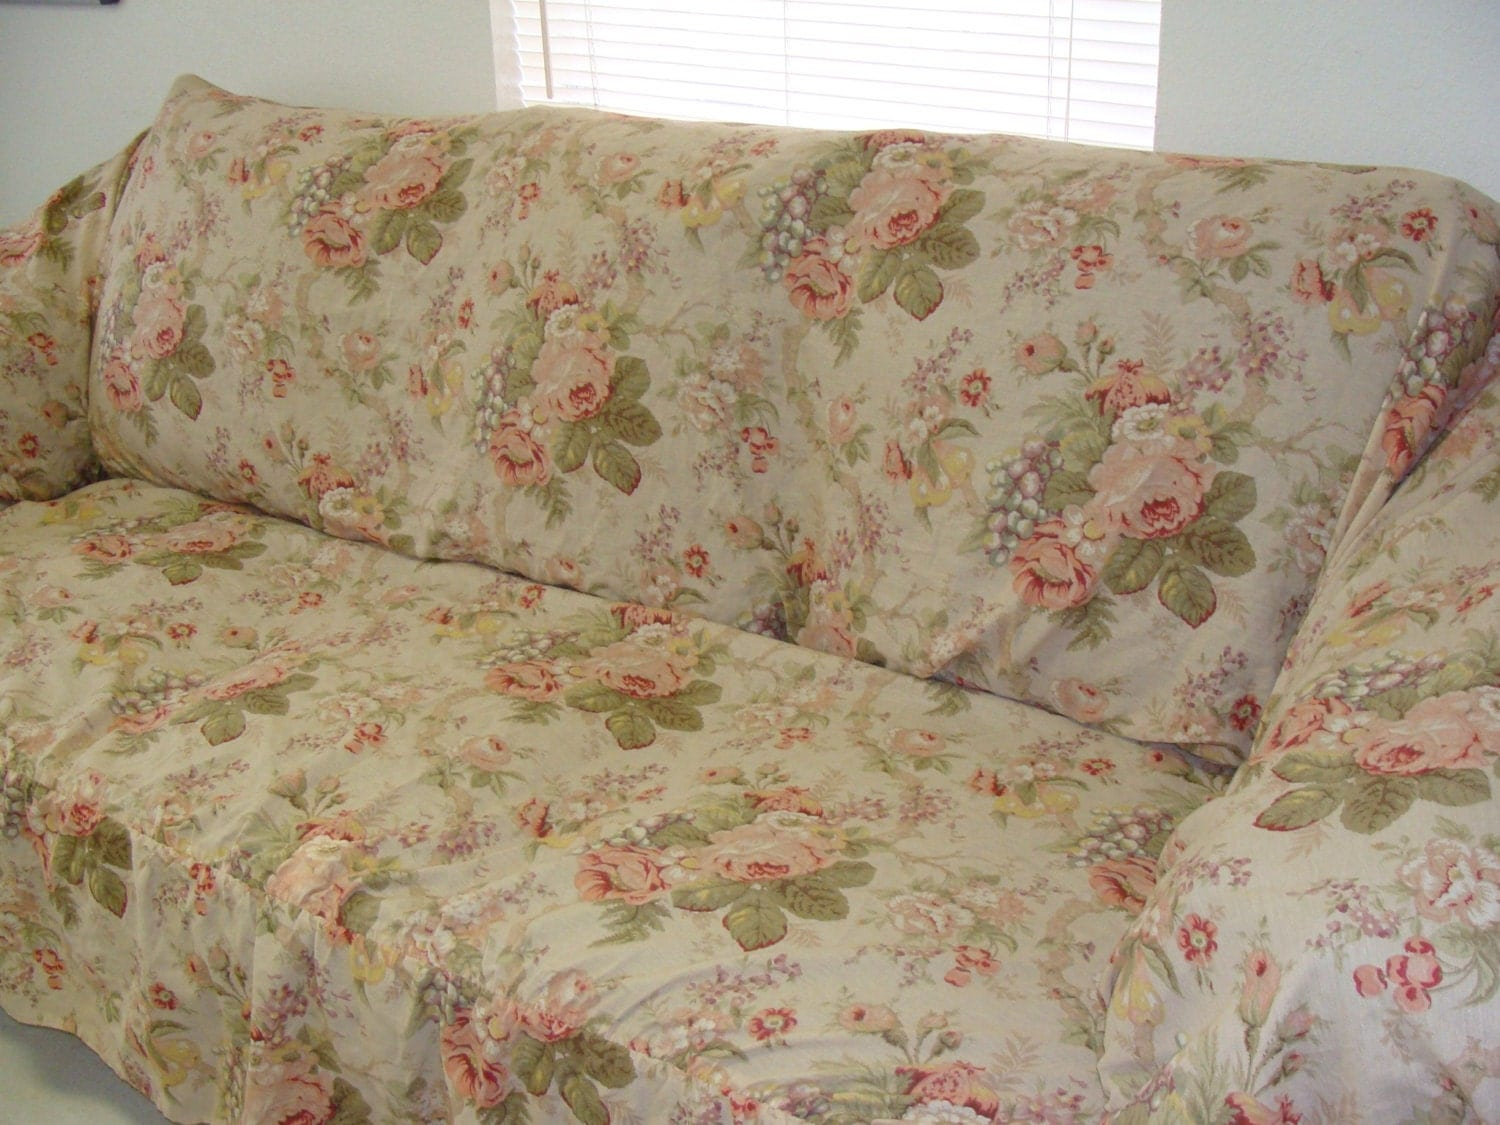 rose sofa slipcover bed ideas shabby chic cover with pink cabbage roses